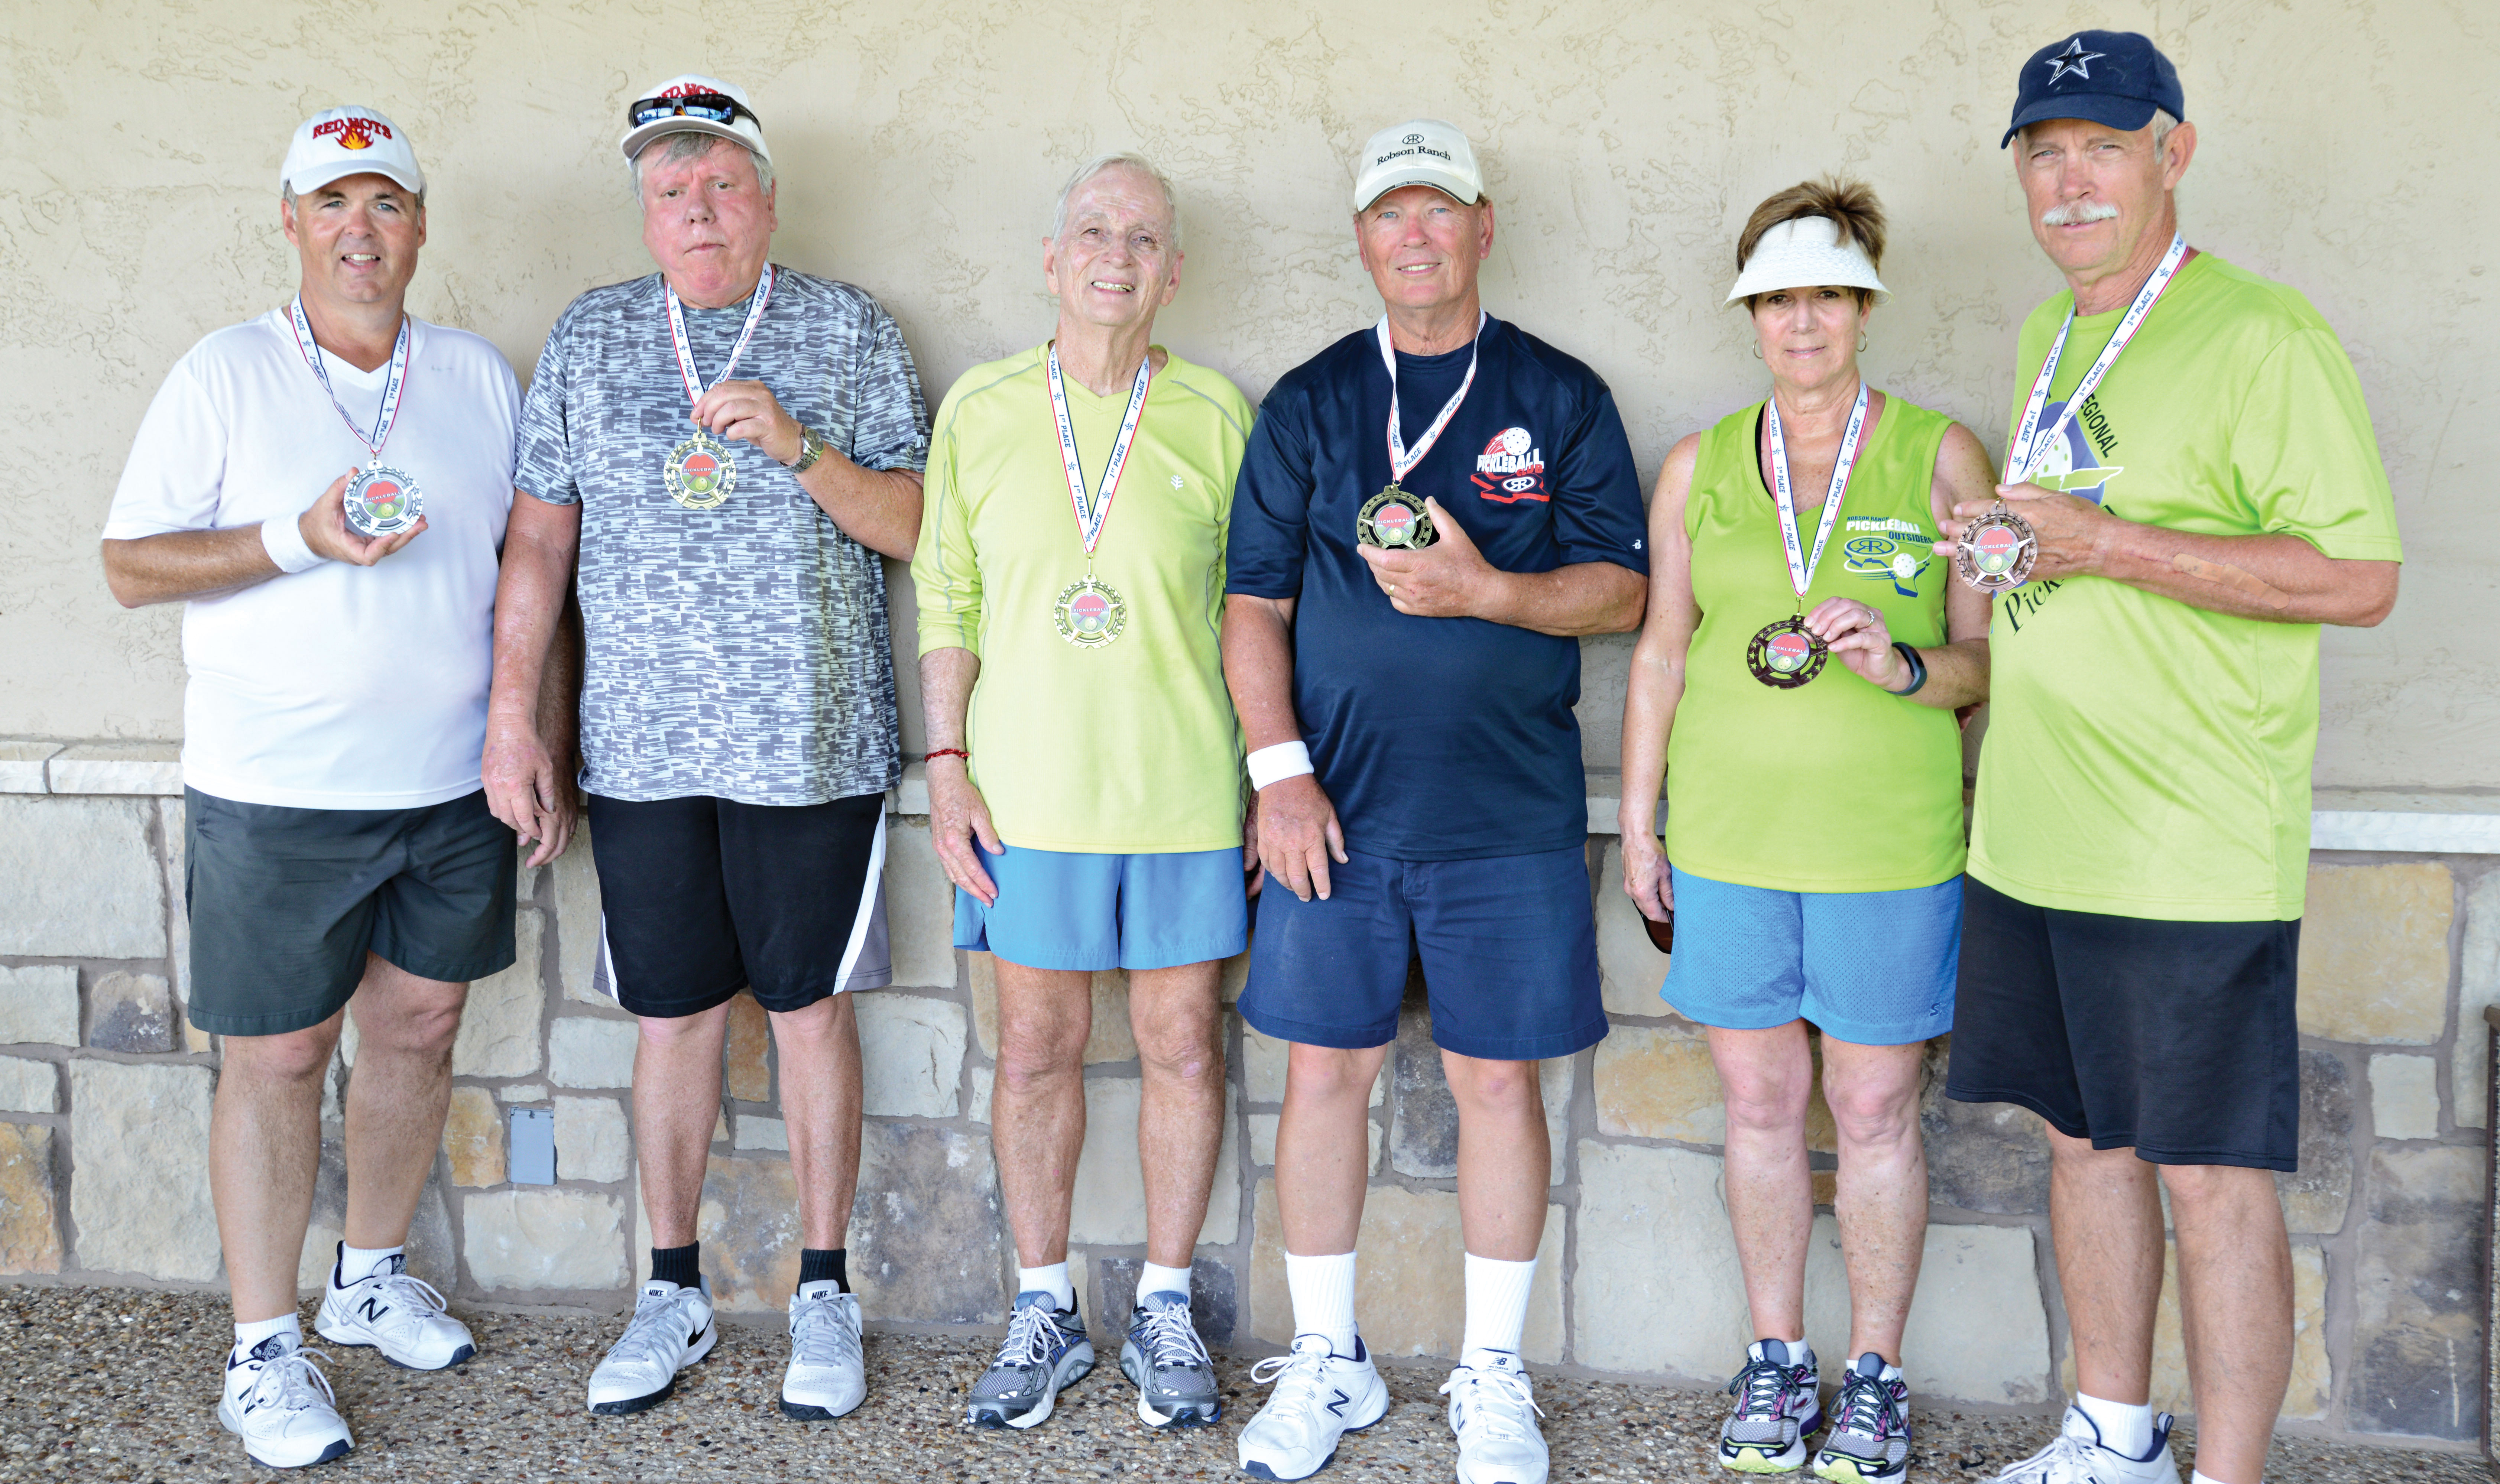 Division A winners, left to right: Jim Lafferty, Jim Richardson, Jerry Killingsworth, Mike Conley, Cassie Richardson and Patrick Claytor